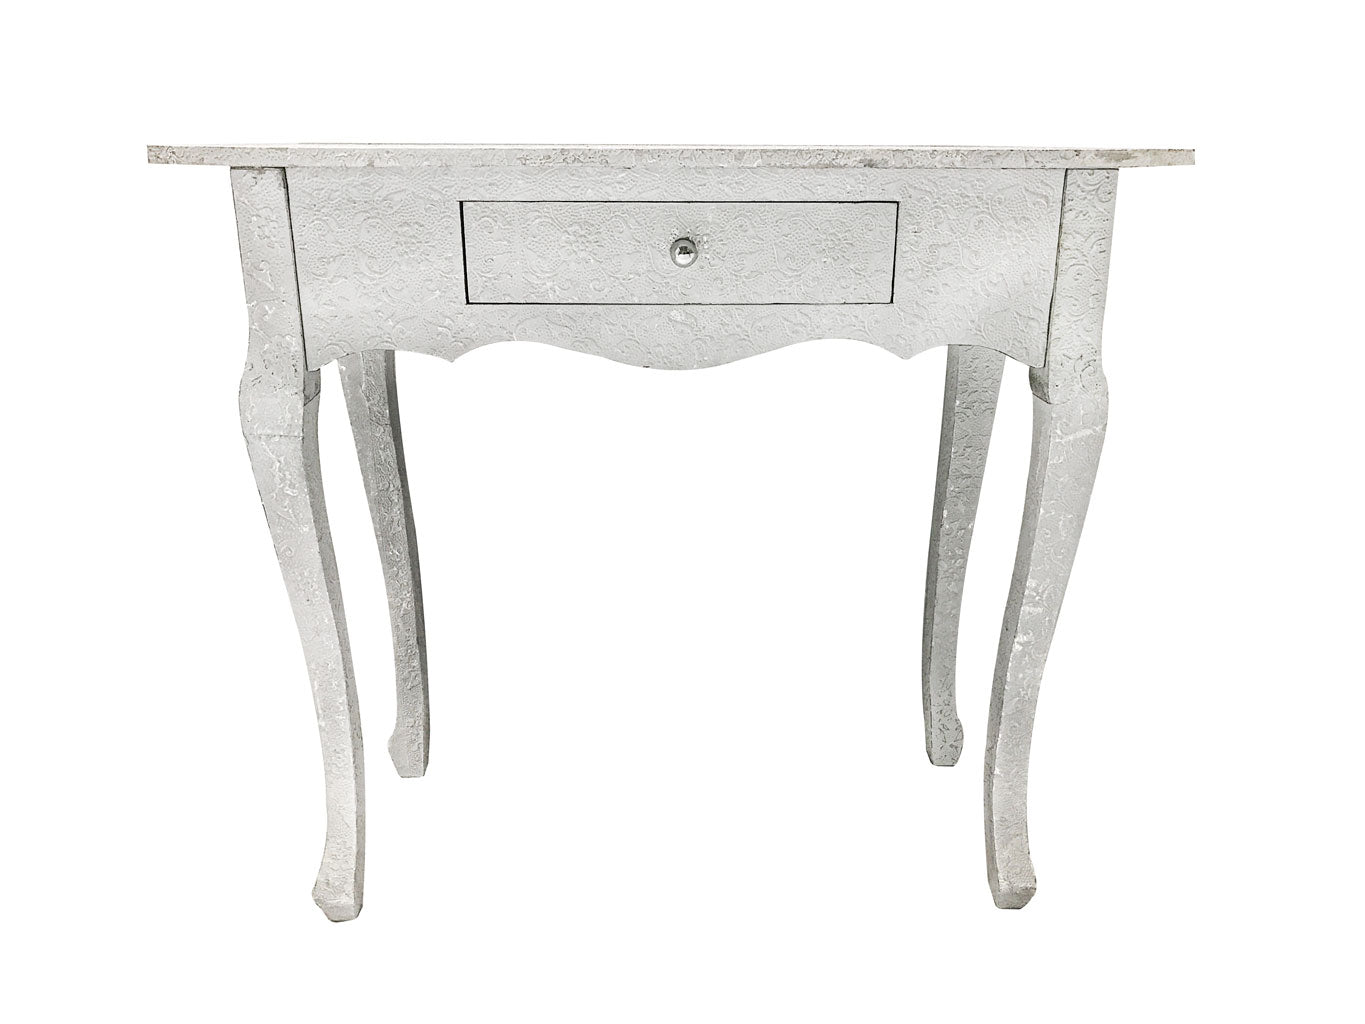 Repousse Console Table with 1 Drawer in White and Silver Finish